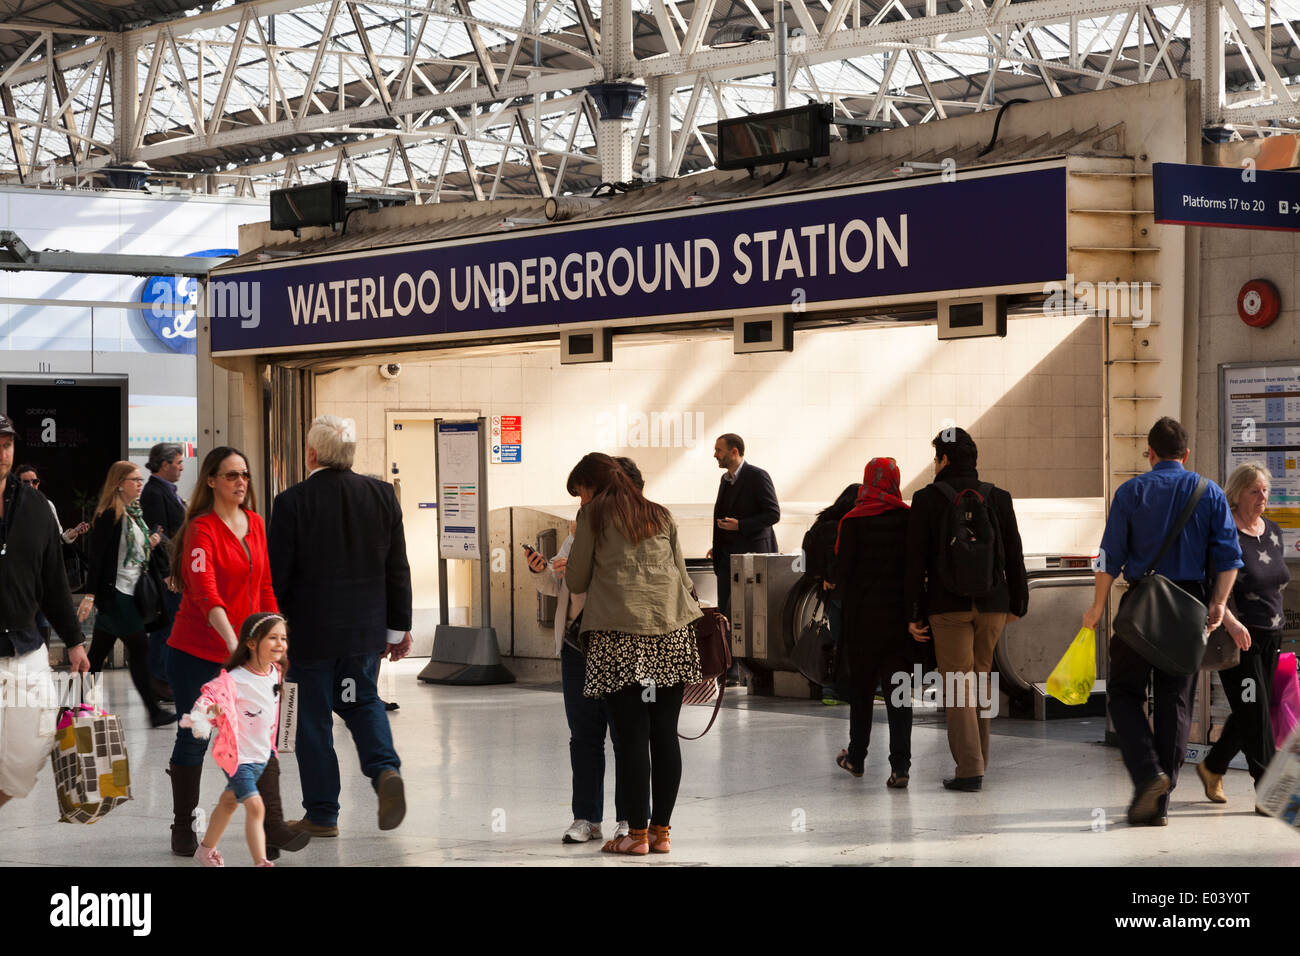 People using Waterloo Underground Station entrance on the concourse. - Stock Image